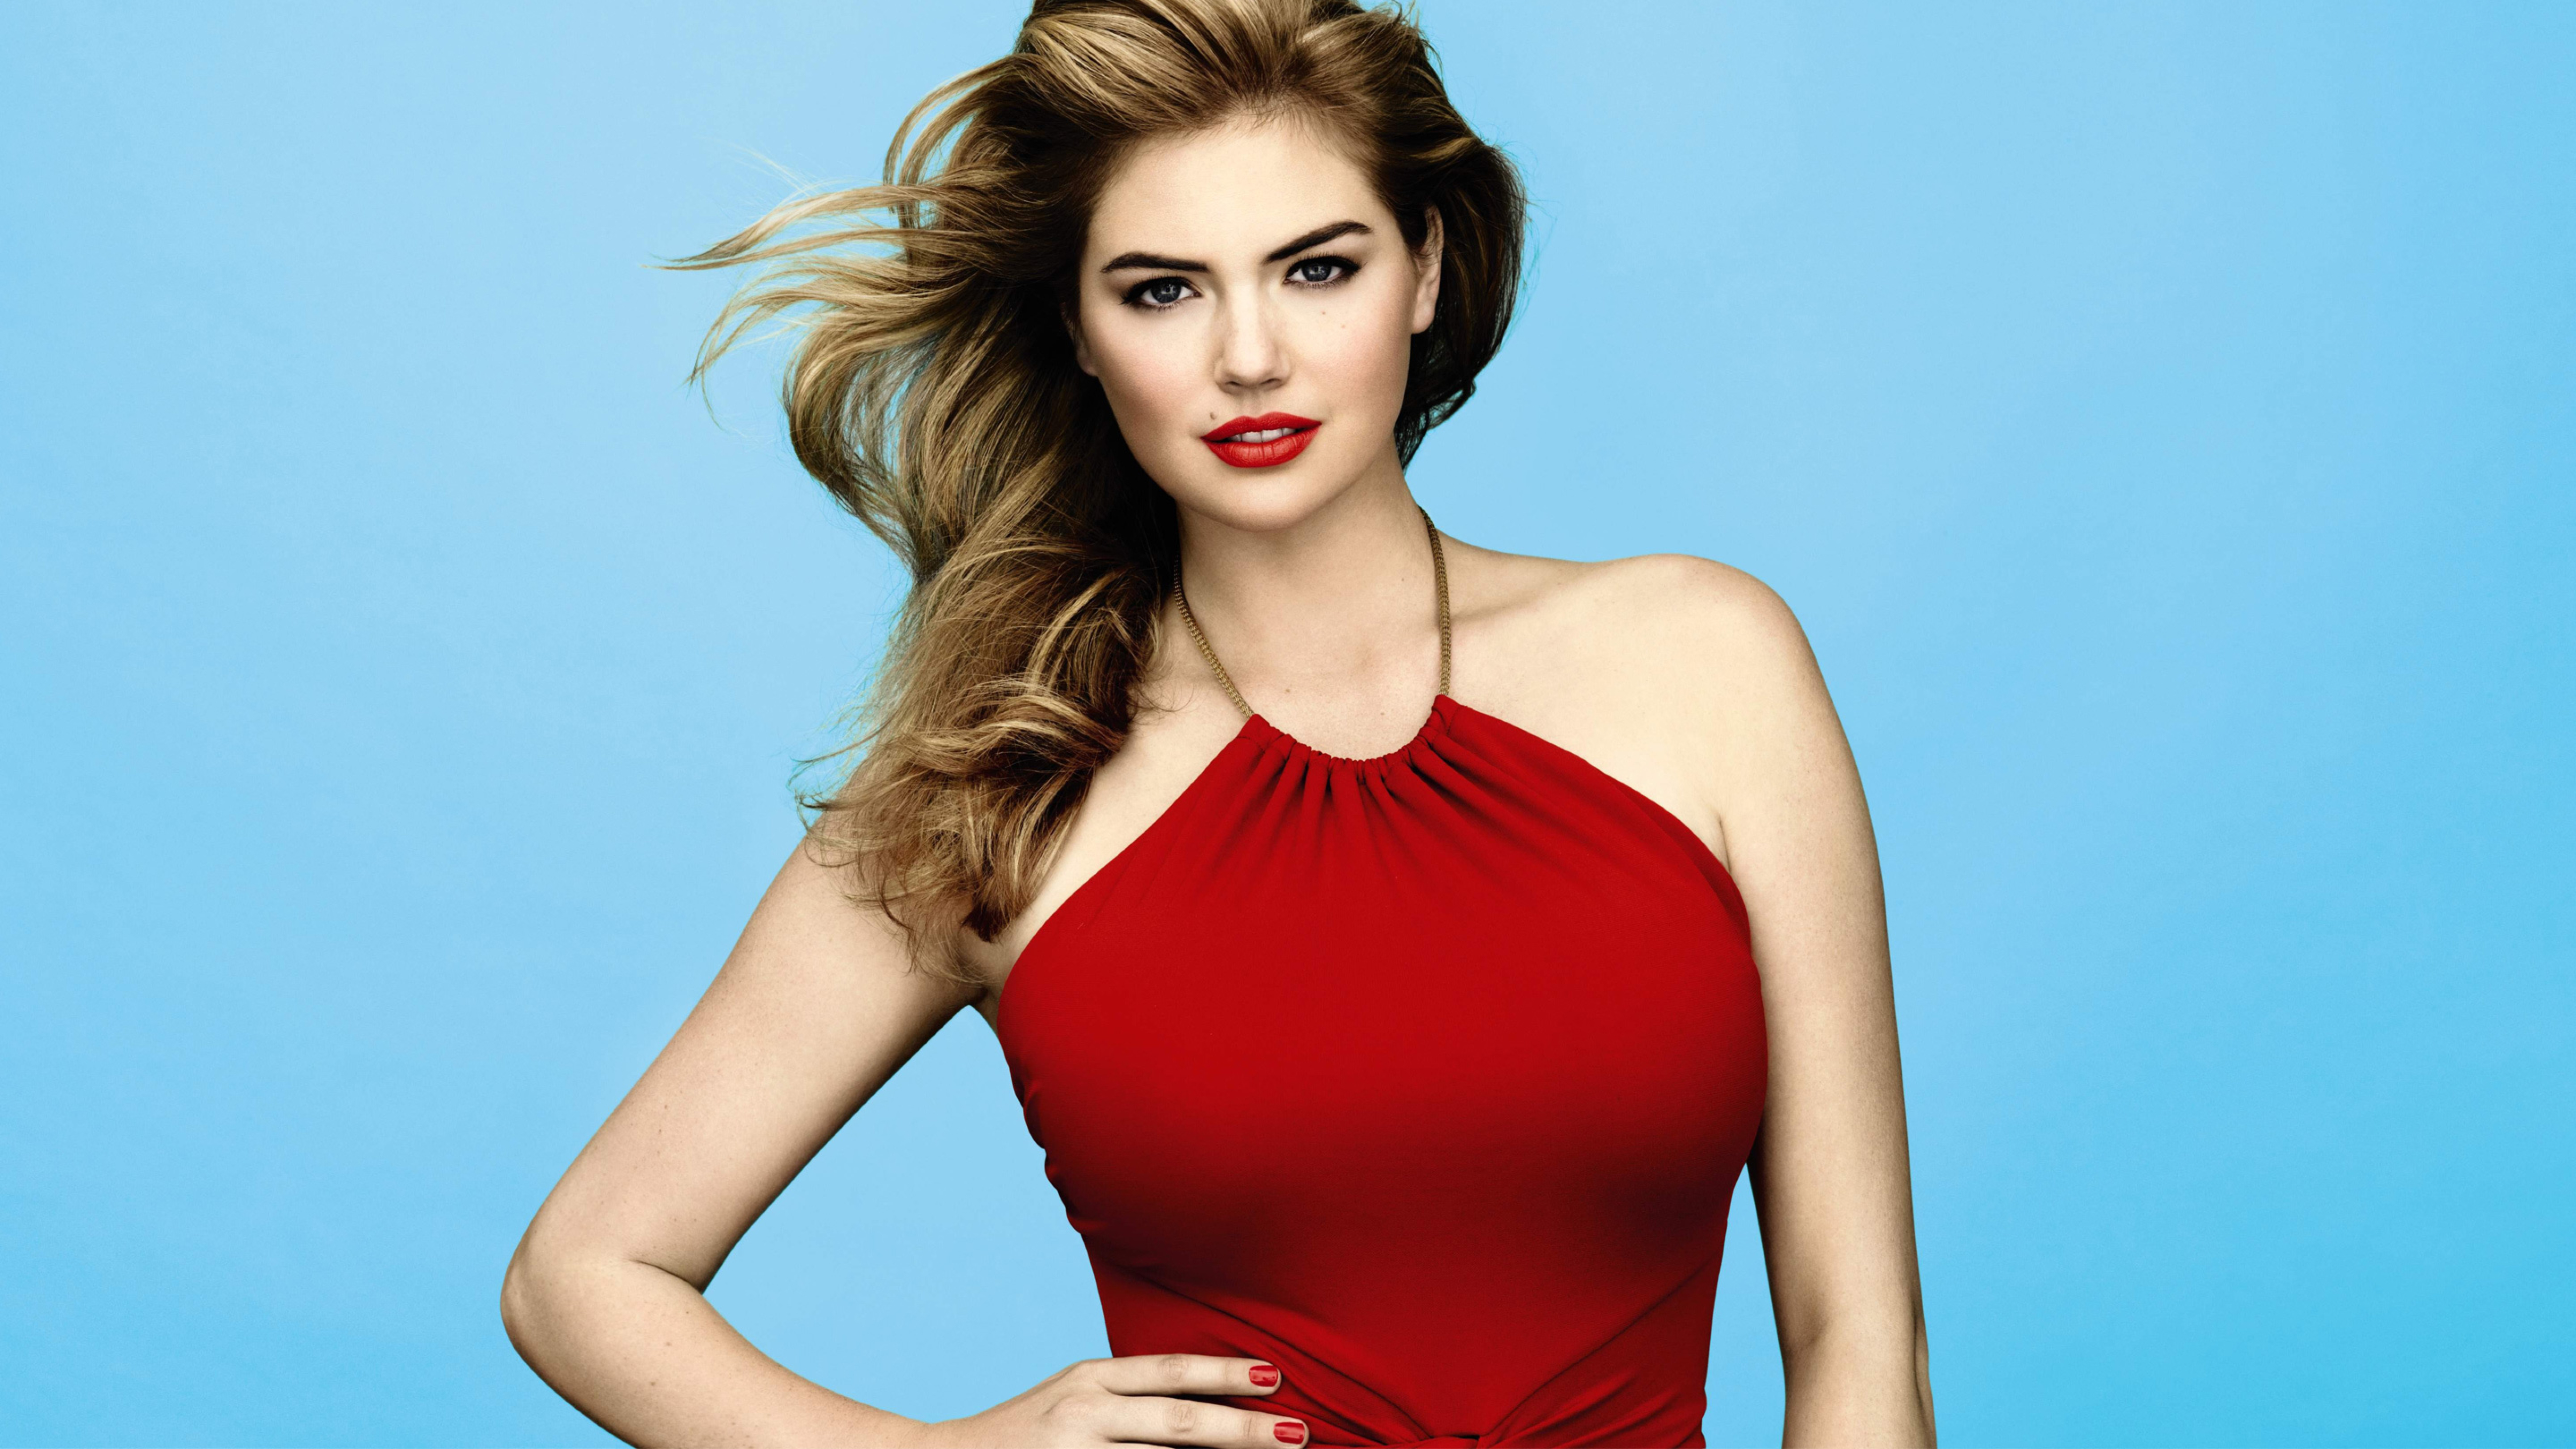 5120x2880 Kate Upton Hot Red Dress 5k Wallpaper Hd Celebrities 4k Wallpapers Images Photos And Background I'm a rebel just for kicks @strong4mefit. 5120x2880 kate upton hot red dress 5k